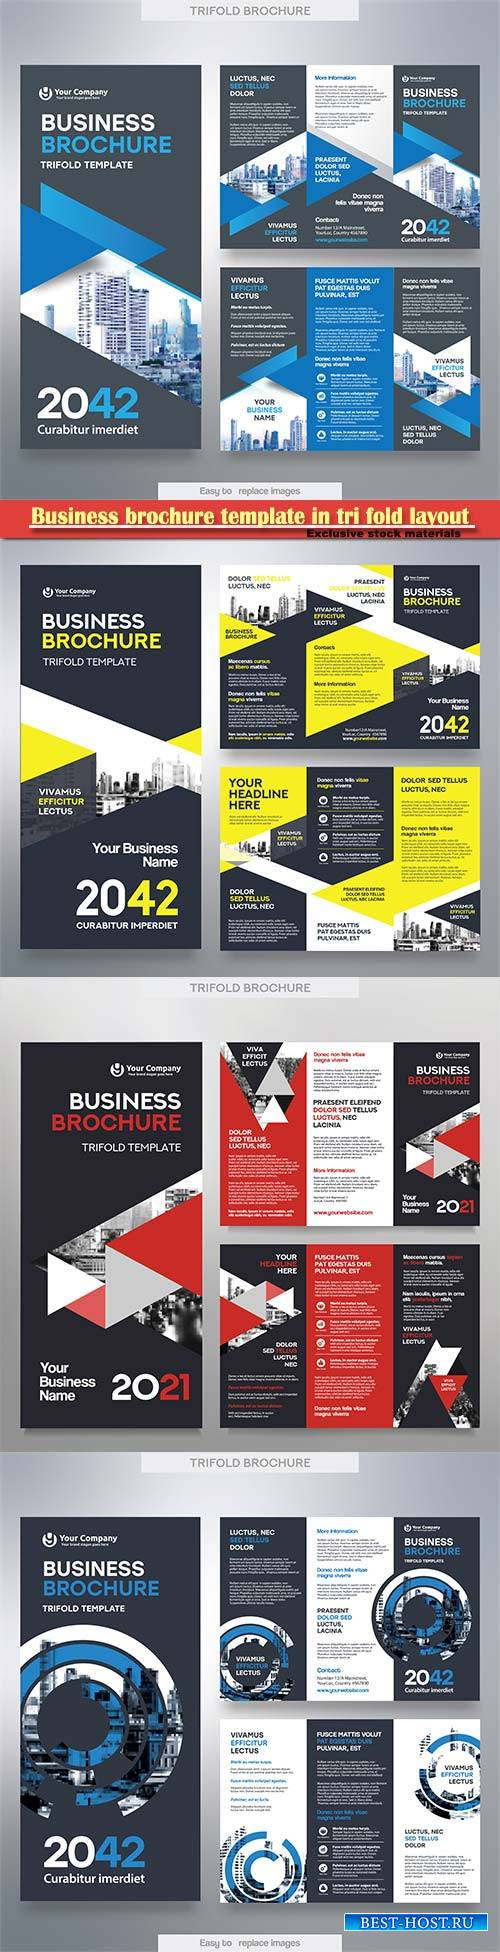 Business brochure template in tri fold layout, corporate design leaflet wit ...